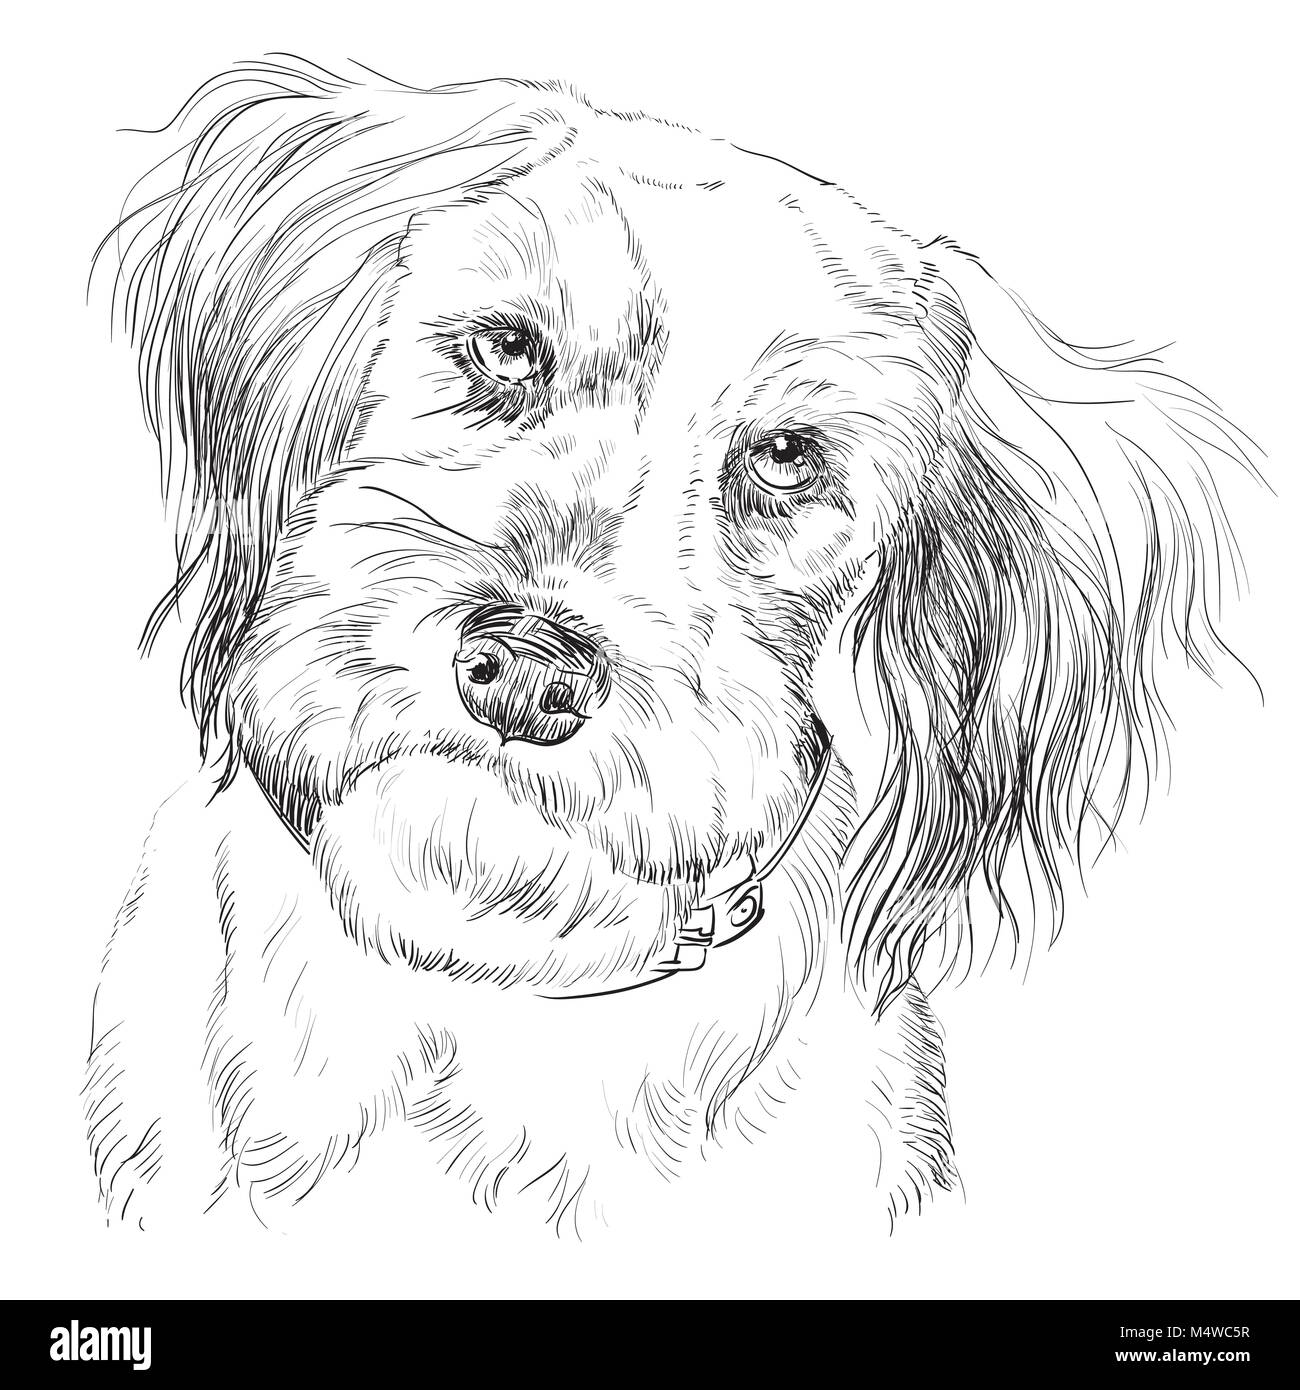 Fluffy mongrel dog vector hand drawing illustration in black color isolated on white background - Stock Vector